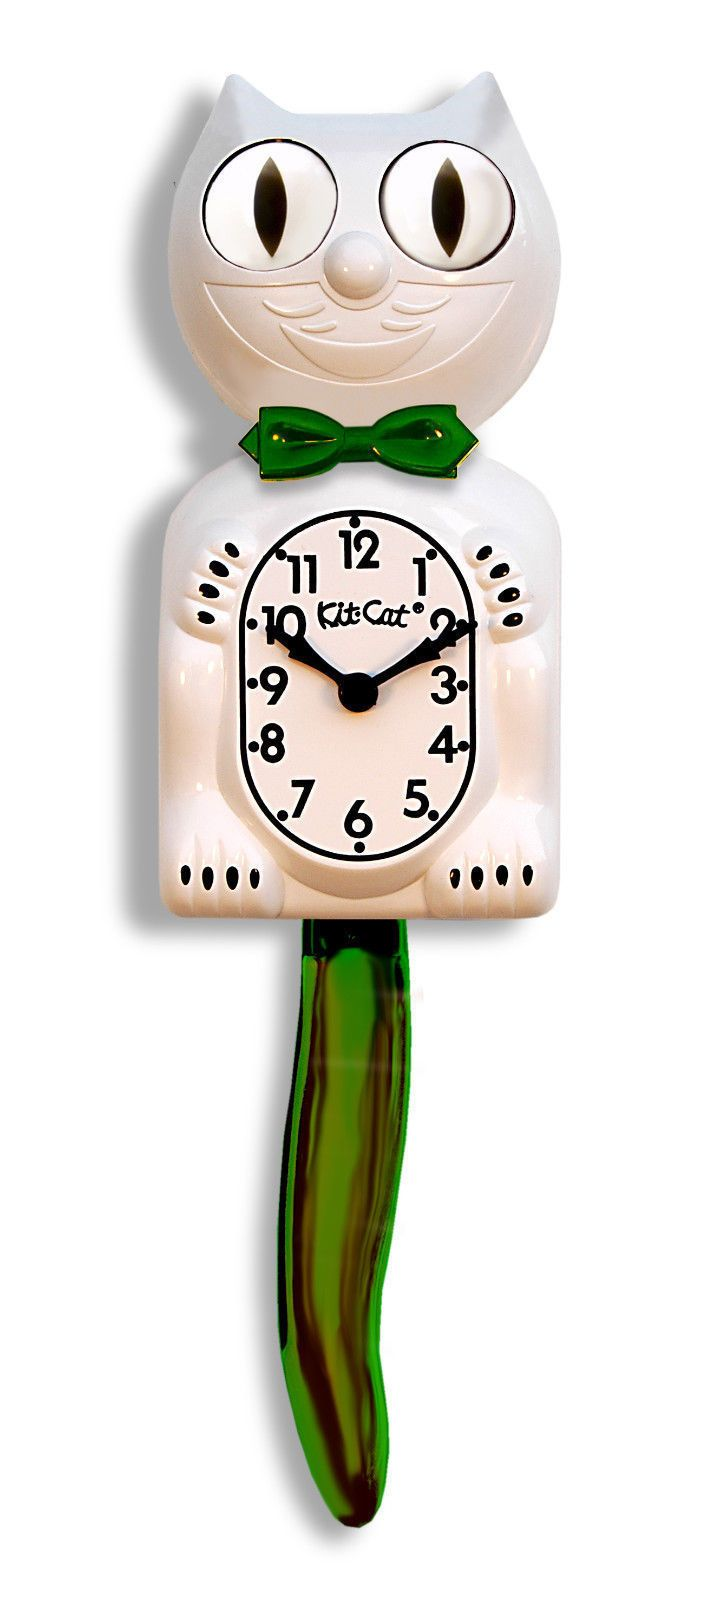 31 best kit cat clocks images on pinterest clocks airstream and candy cane green white christmas kit cat clock free batteries bc 12cg new ebay amipublicfo Gallery